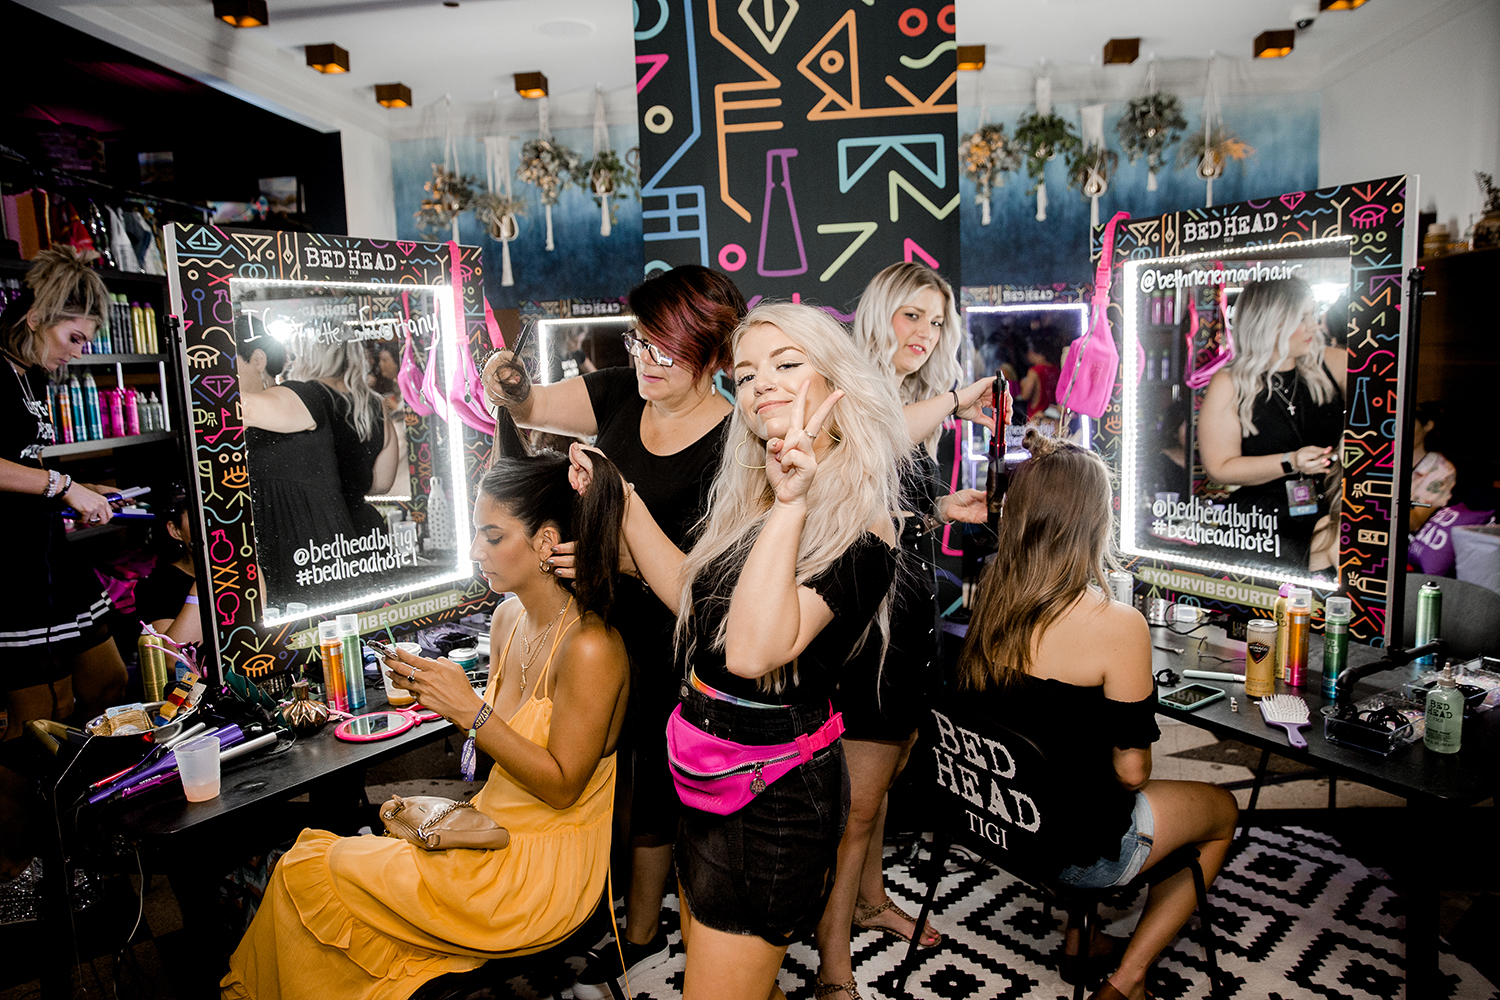 Event guests enjoyed complimentary hairstyling by Bed Head using the brand's top selling stylers, including their two new maximum-performance hairsprays with breakthrough compression technology, Lightheaded™ and Showdown™.